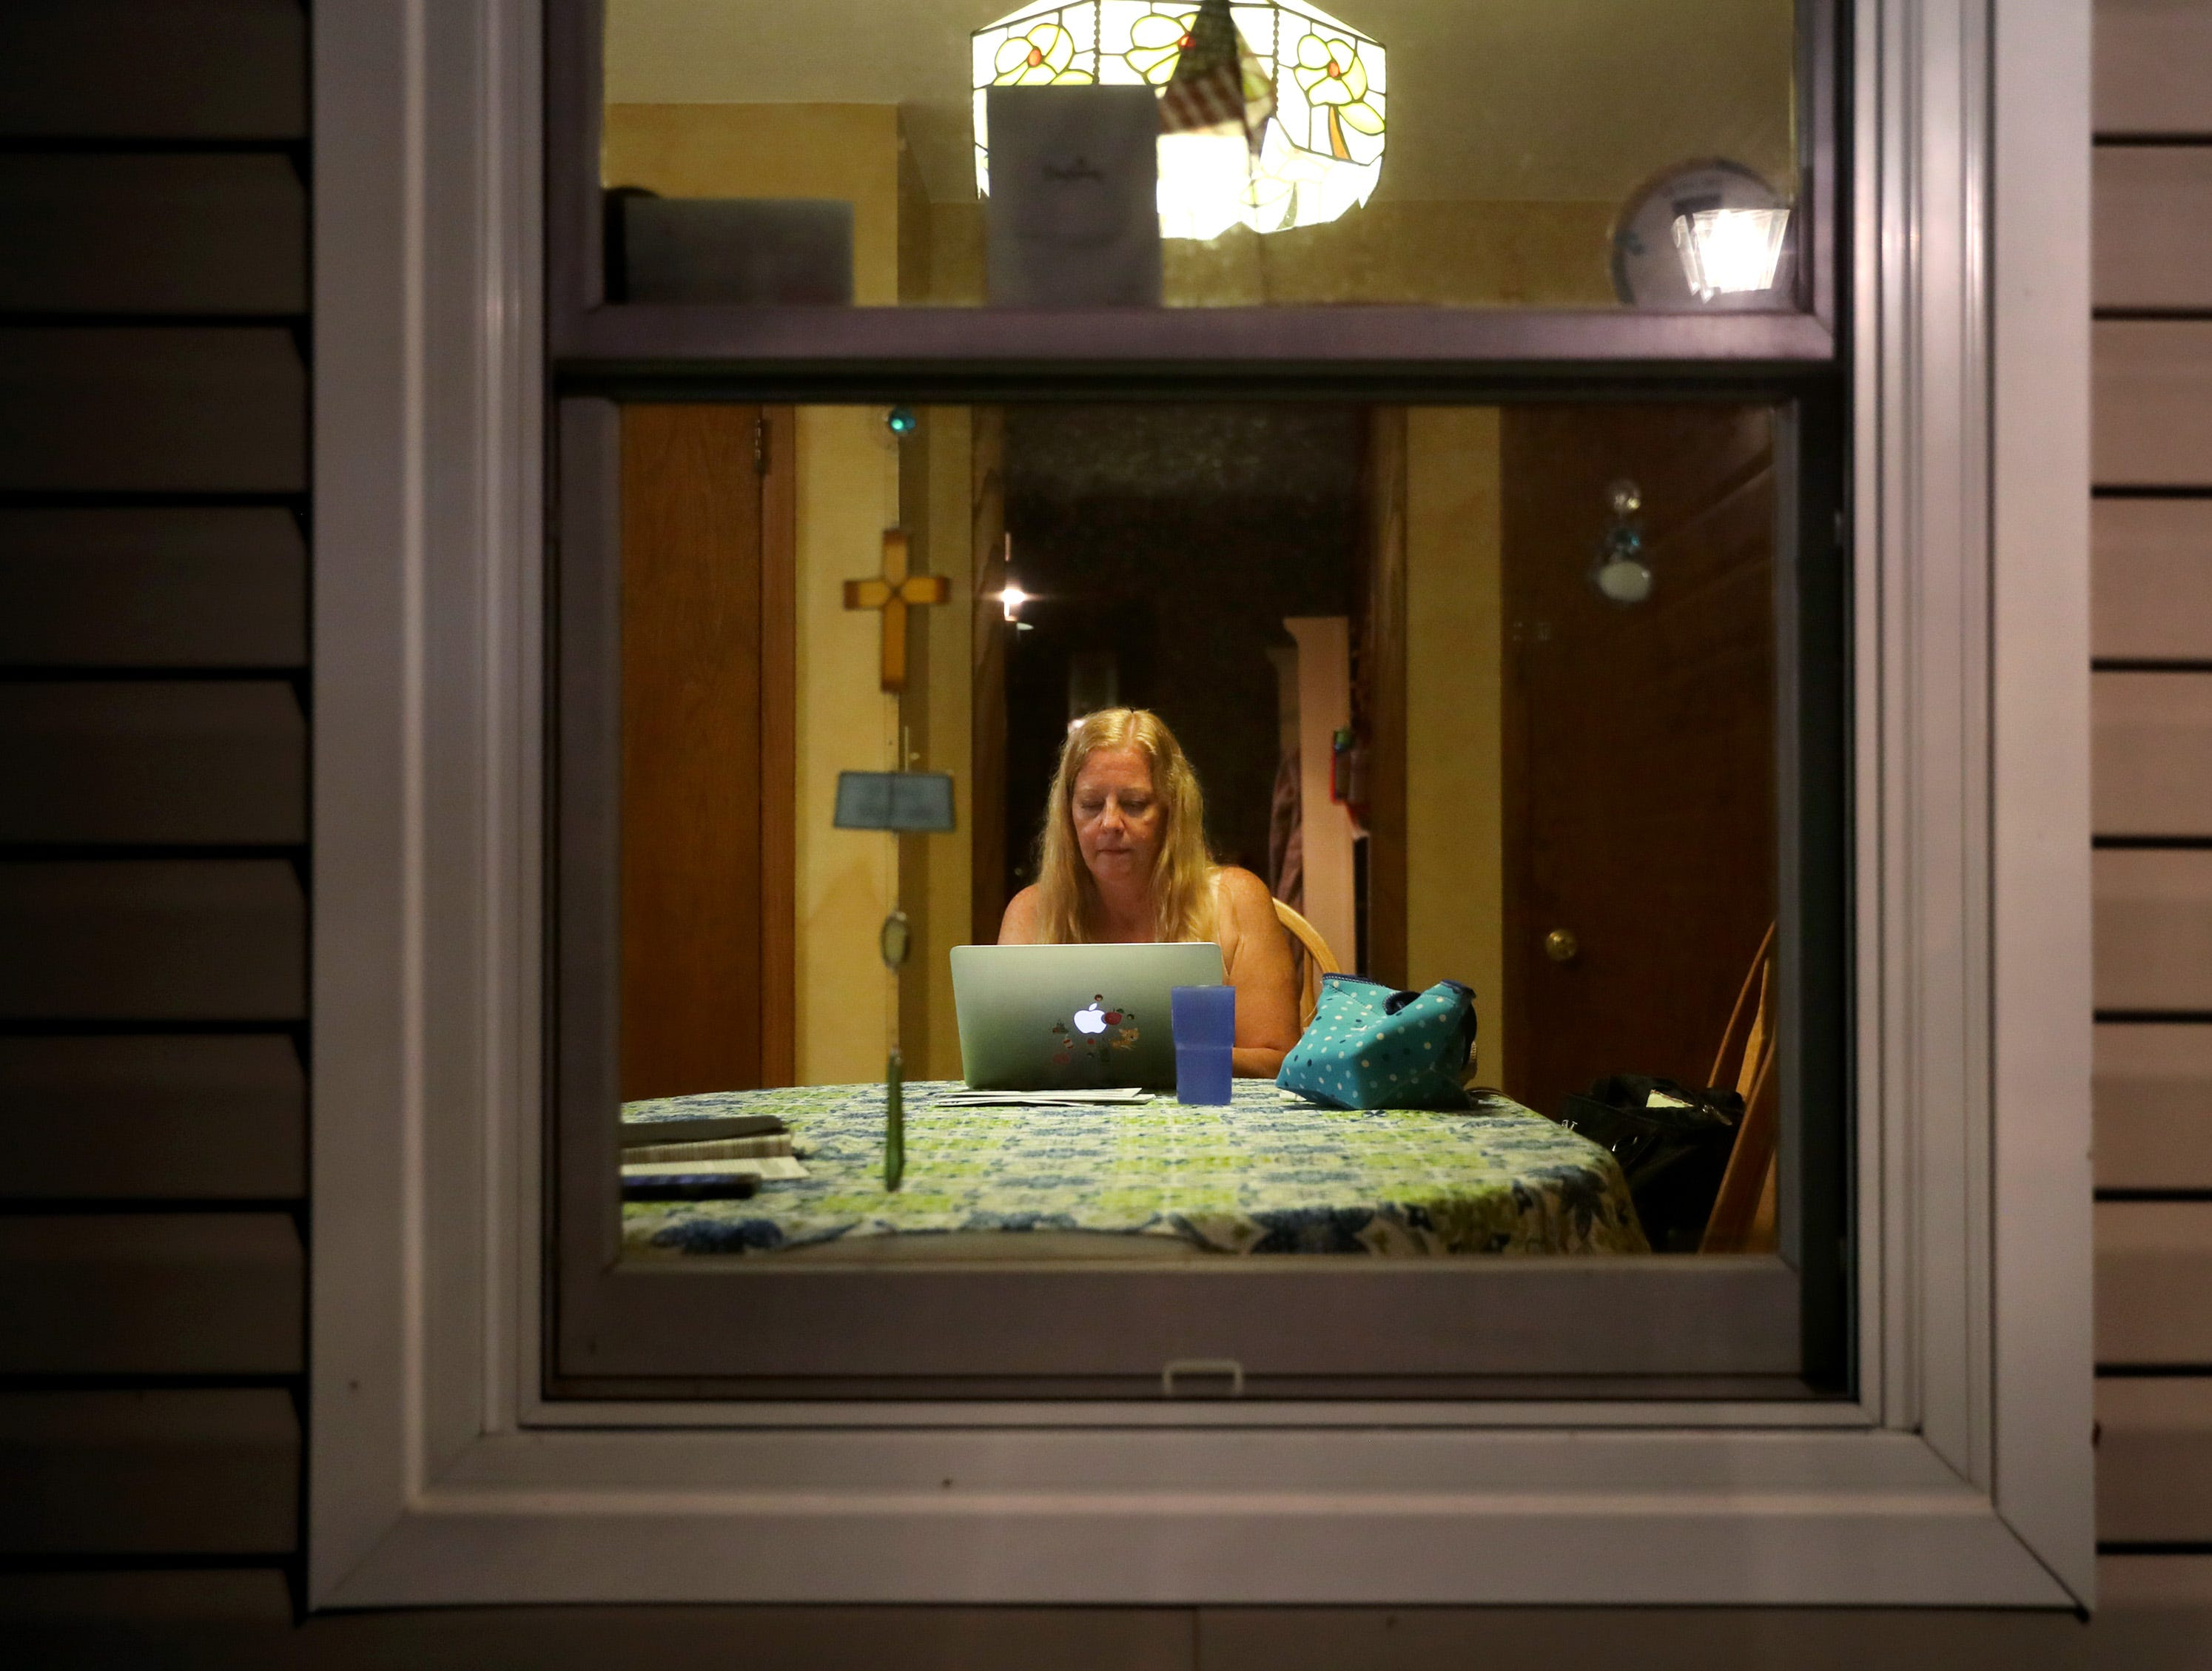 Neenah, WI – Maripat Franke, a checks her email at home at the end of her workday.